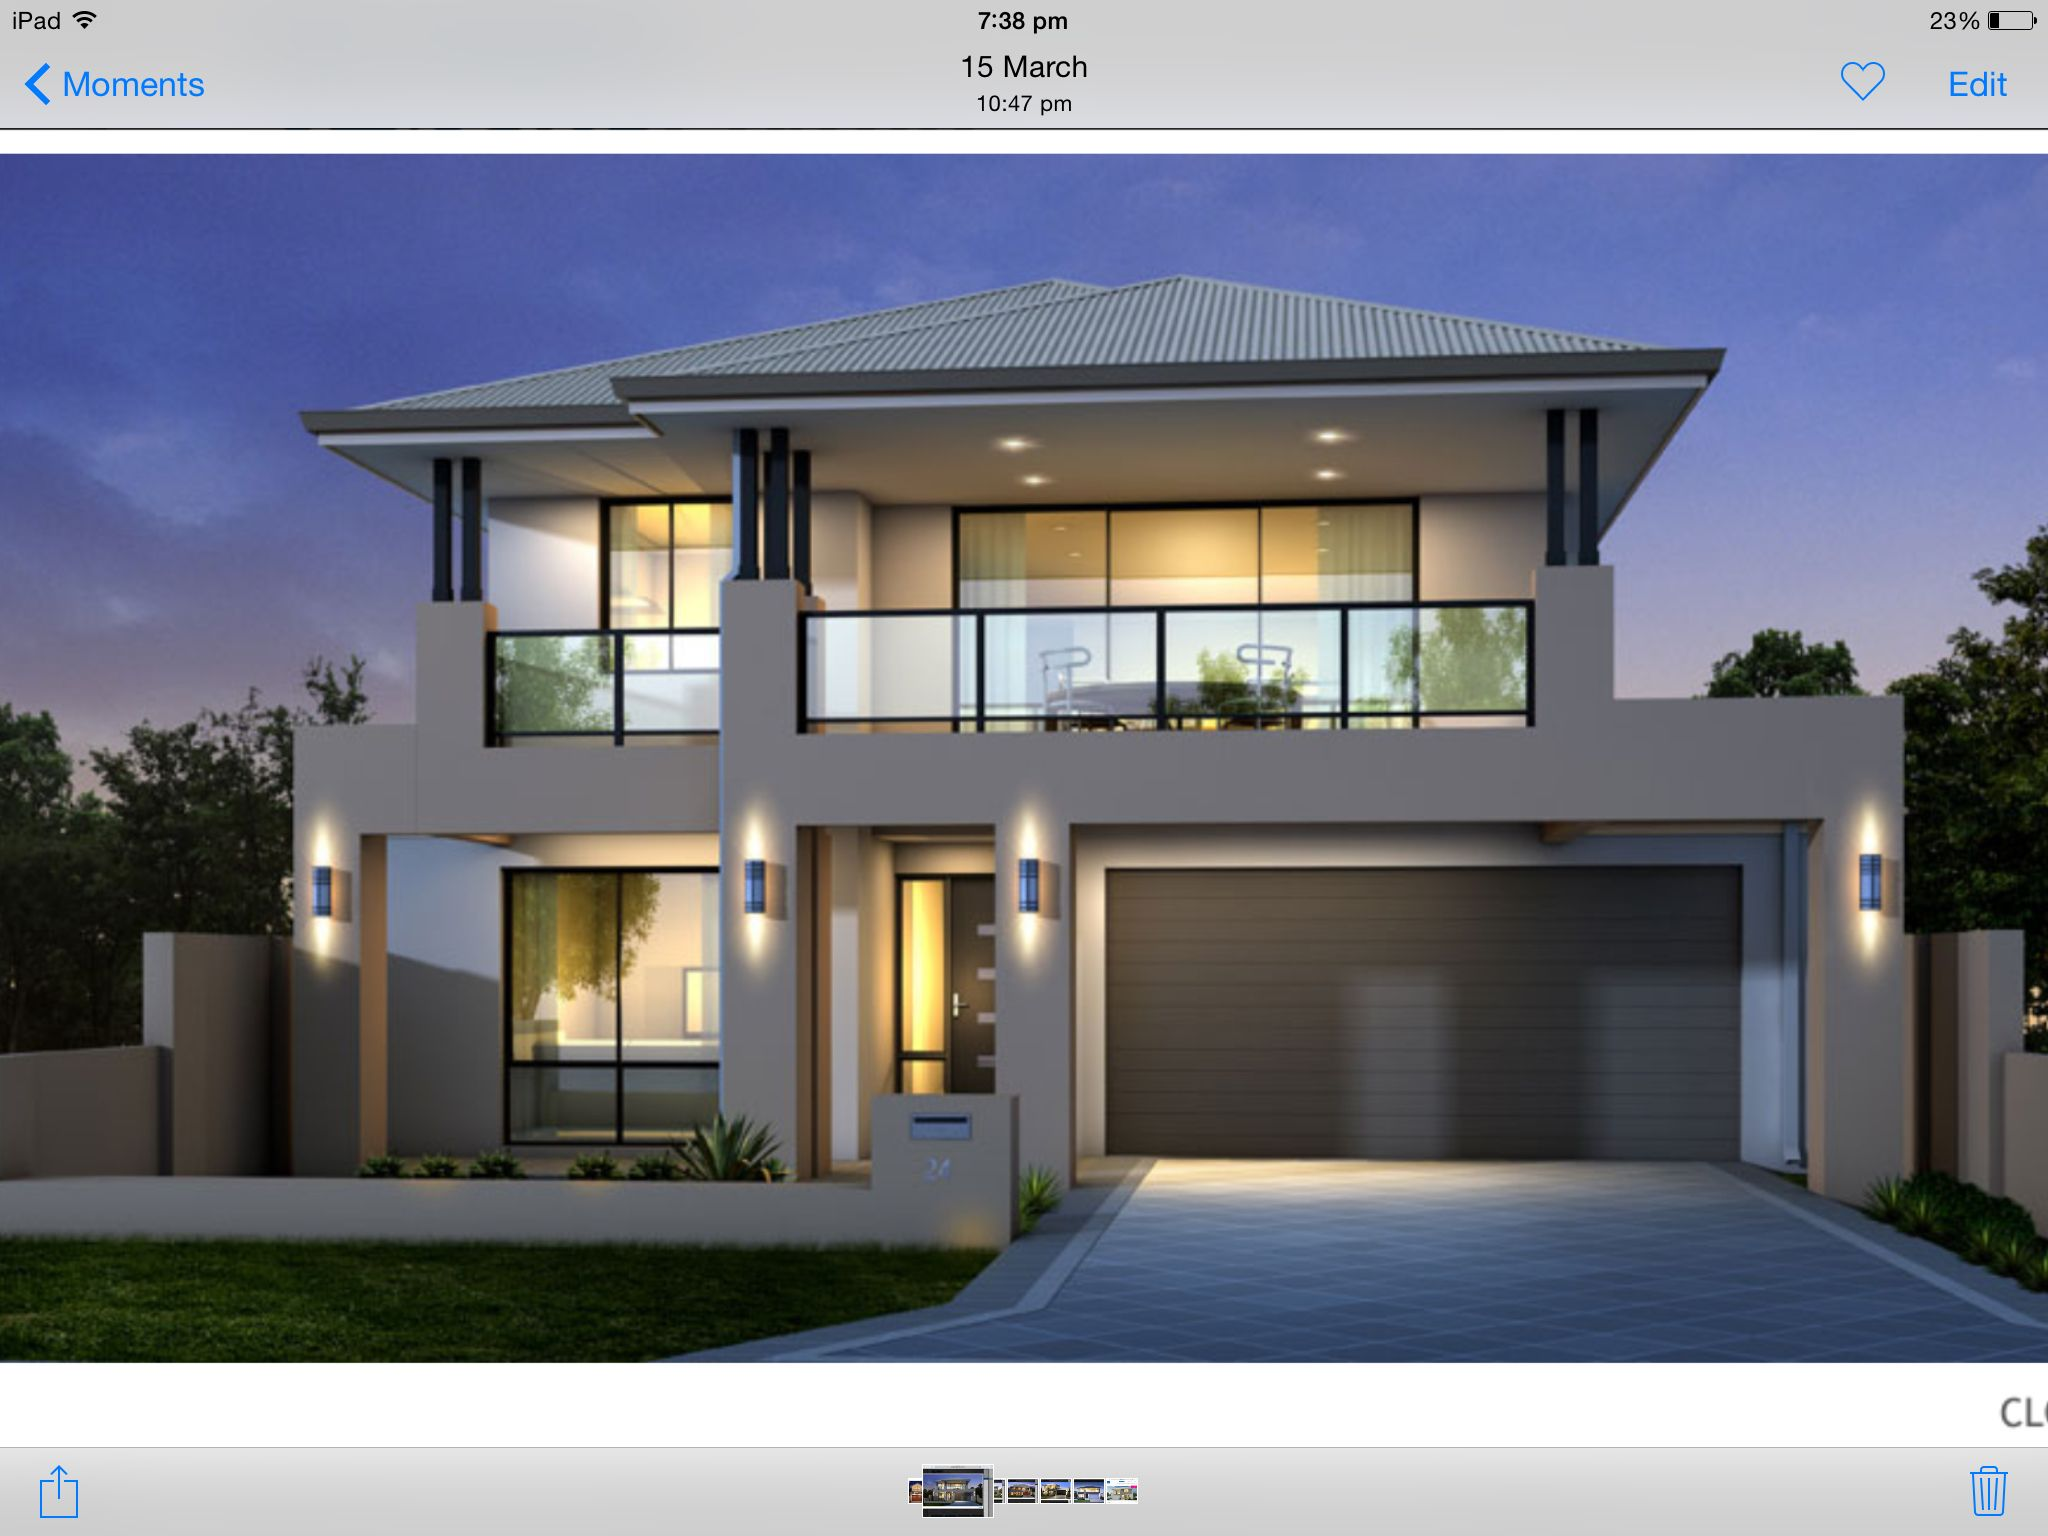 Two storey house facade grey and black balcony over garage glass rail modern sleek